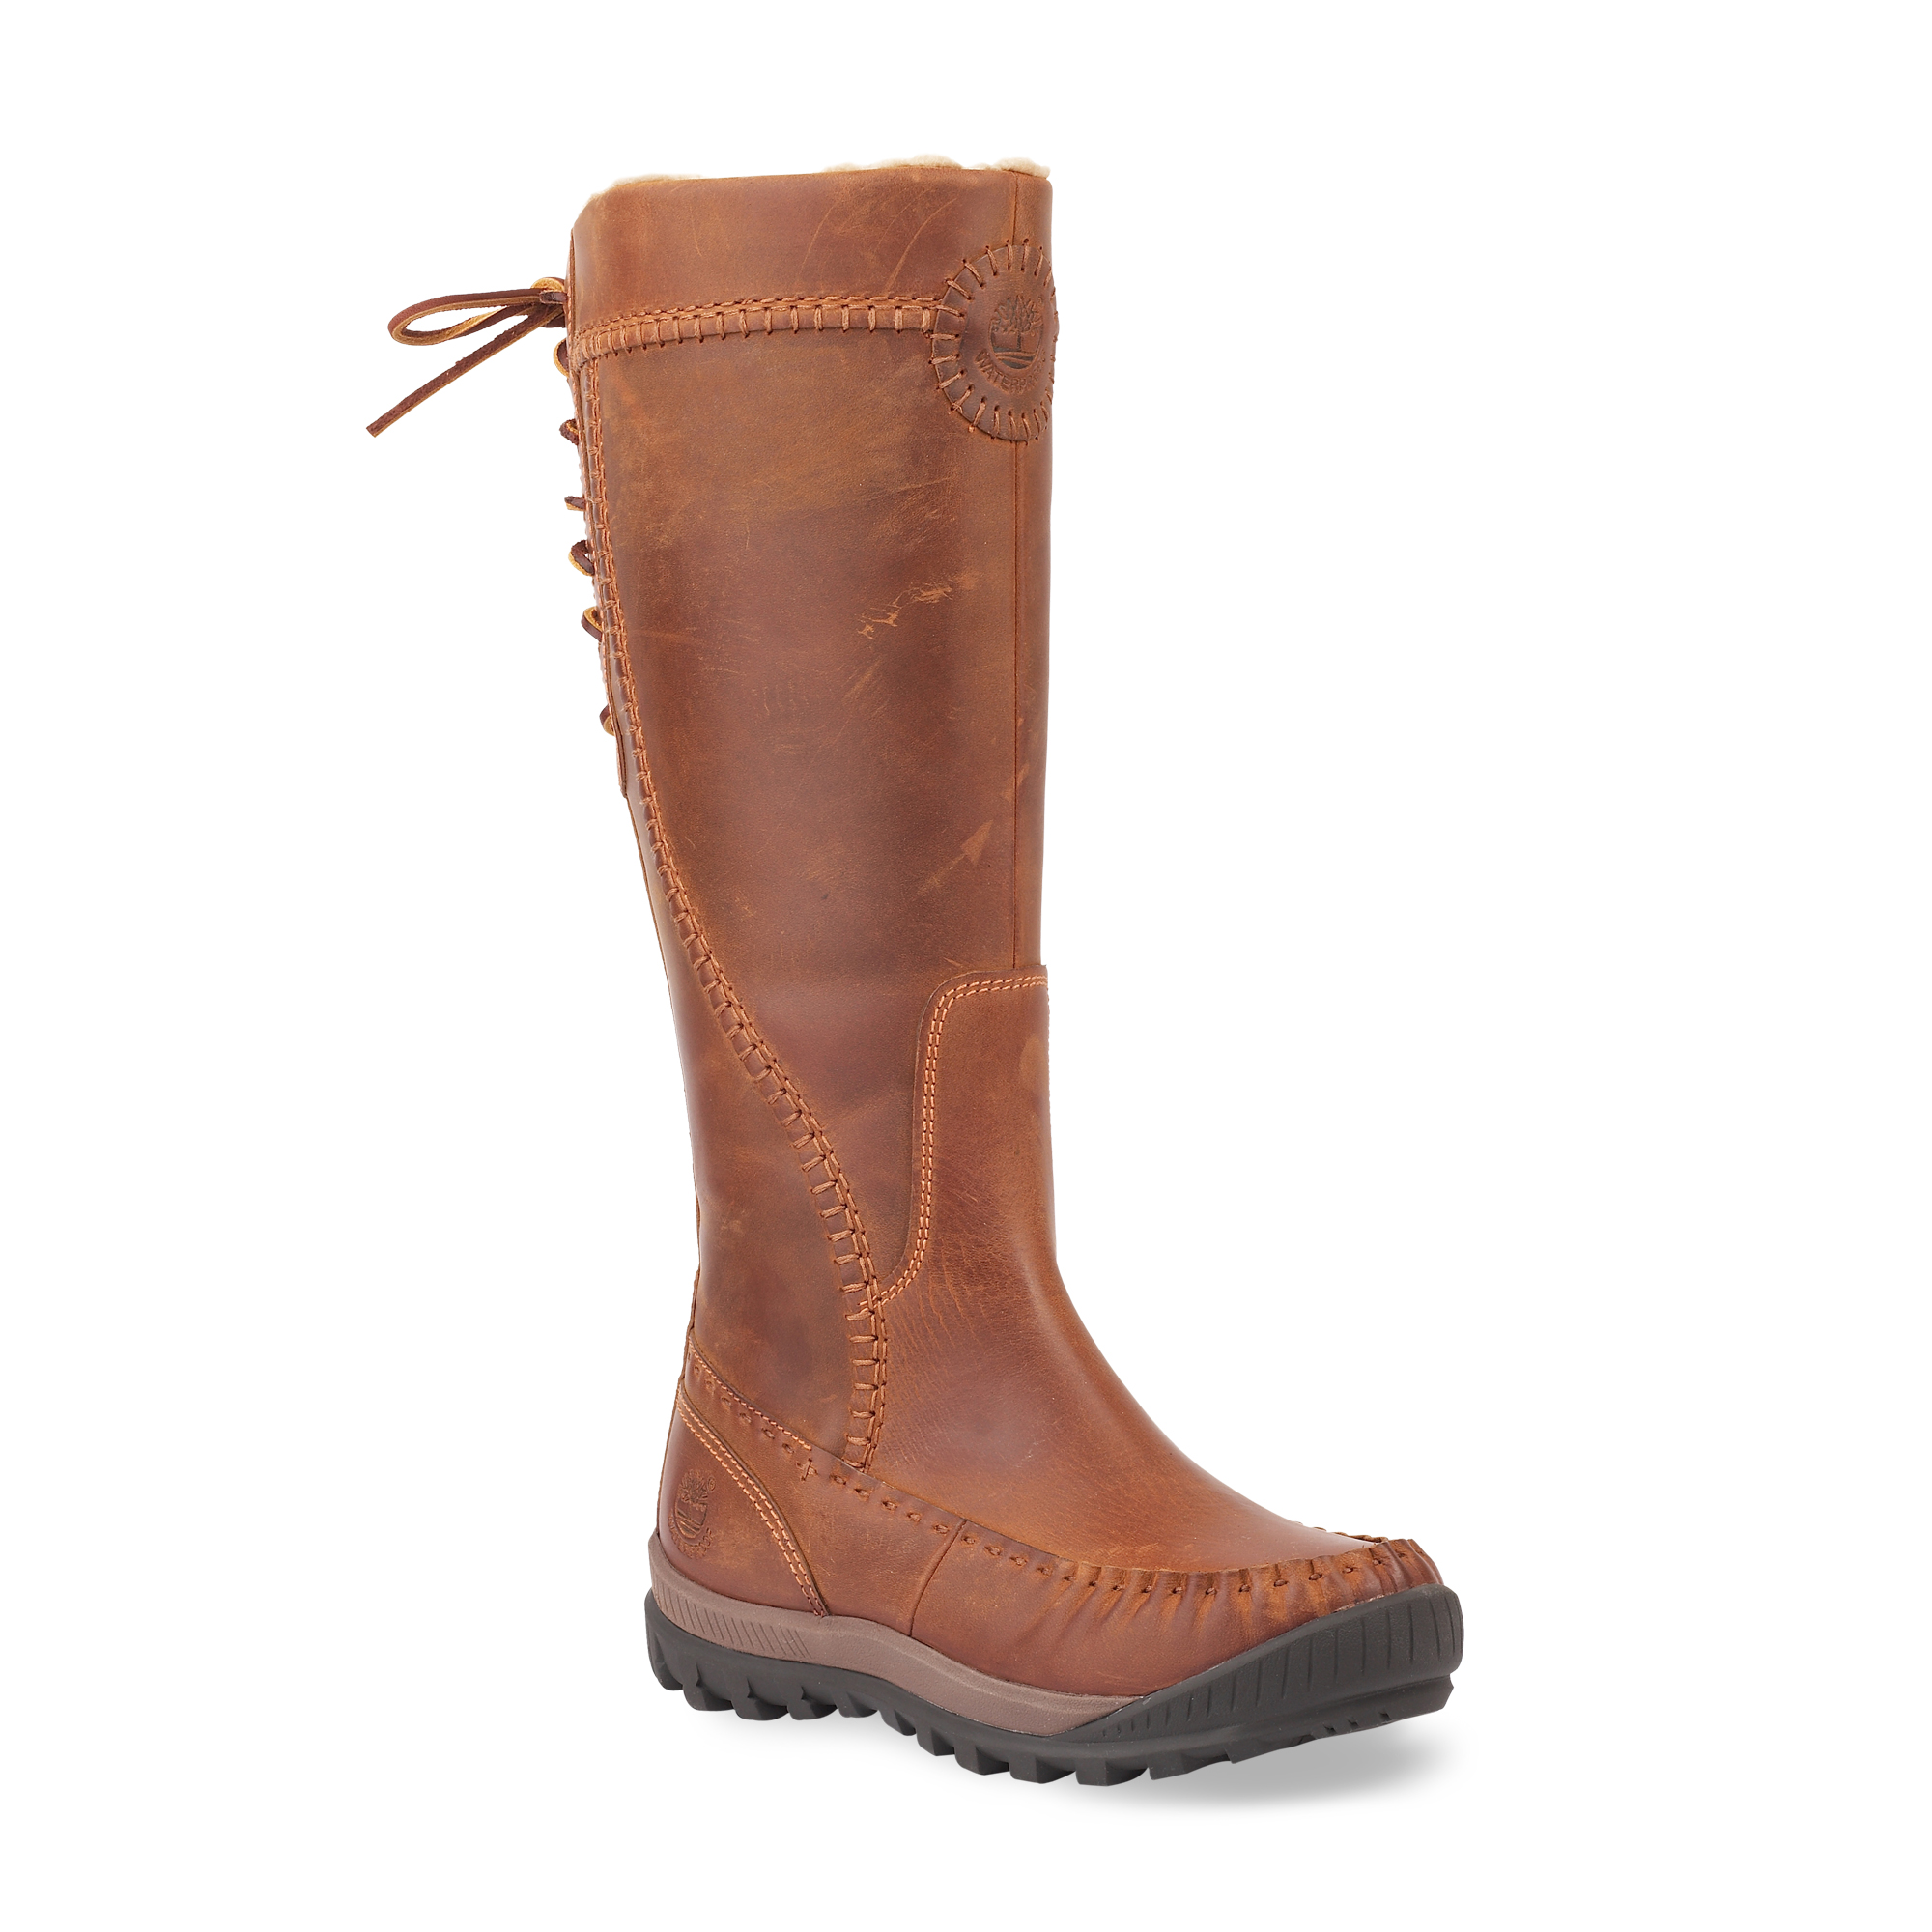 18636 TBL EK Mount Holly Tall All-Leather Zip Boot medium brown